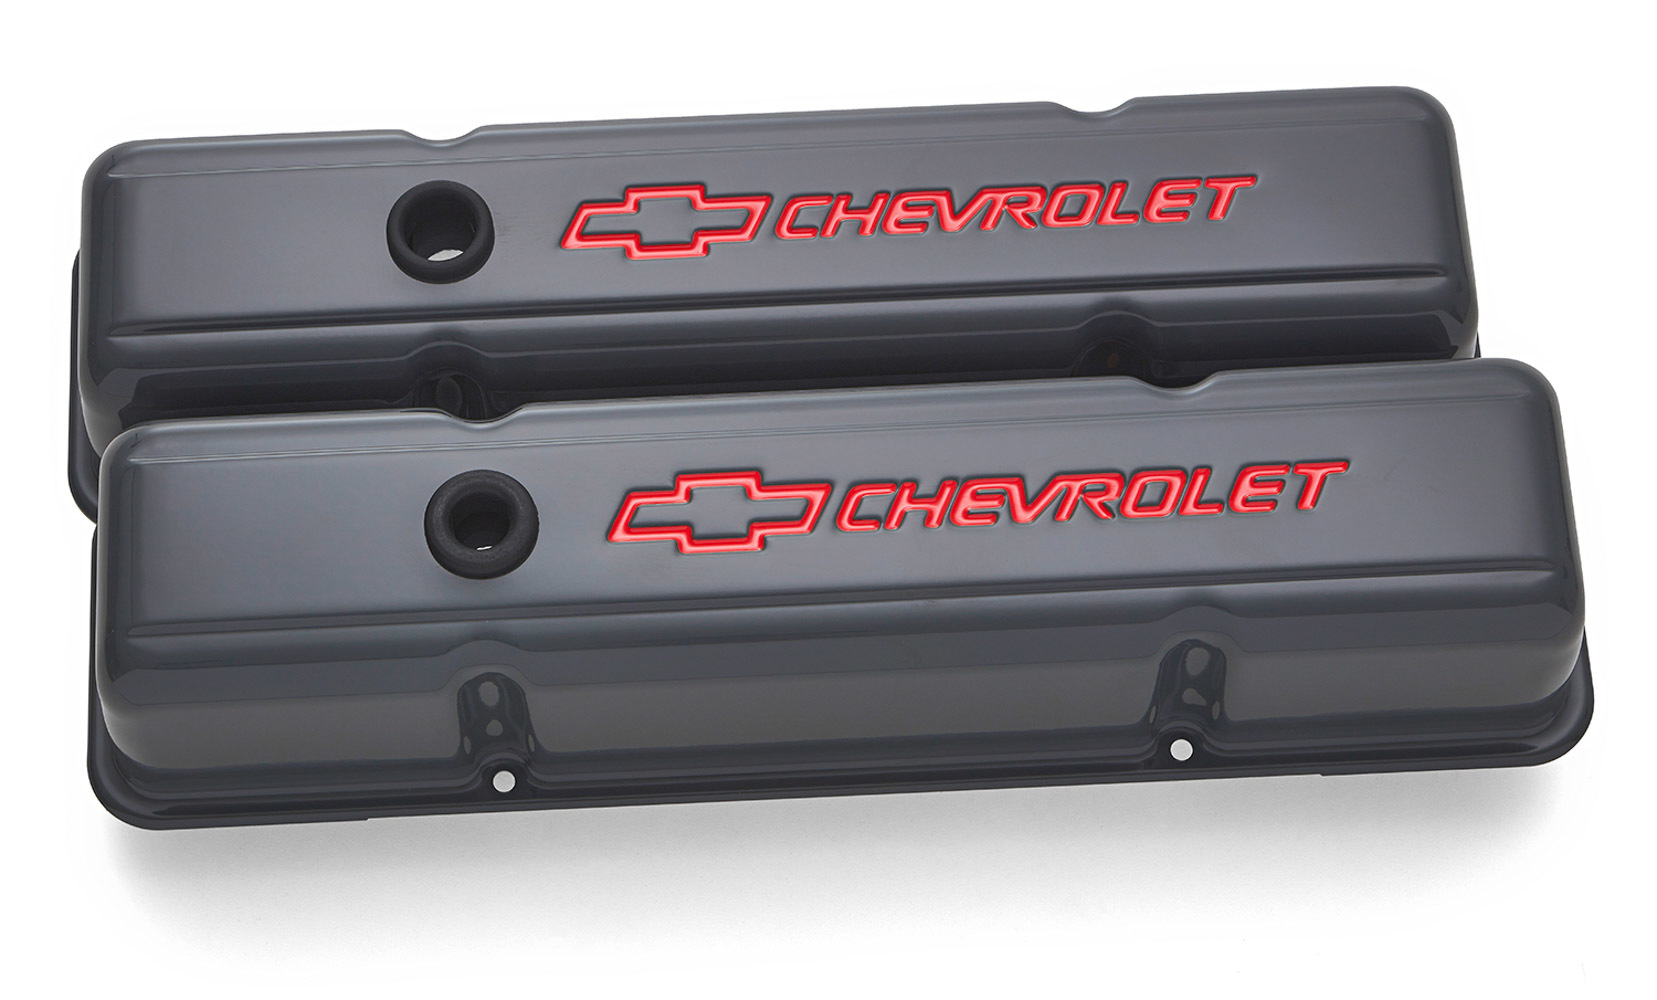 Proform 141-881 Valve Cover, Tall, Baffled, Breather Hole, Chevrolet Bowtie Logo, Steel, Gray, Small Block Chevy, Pair